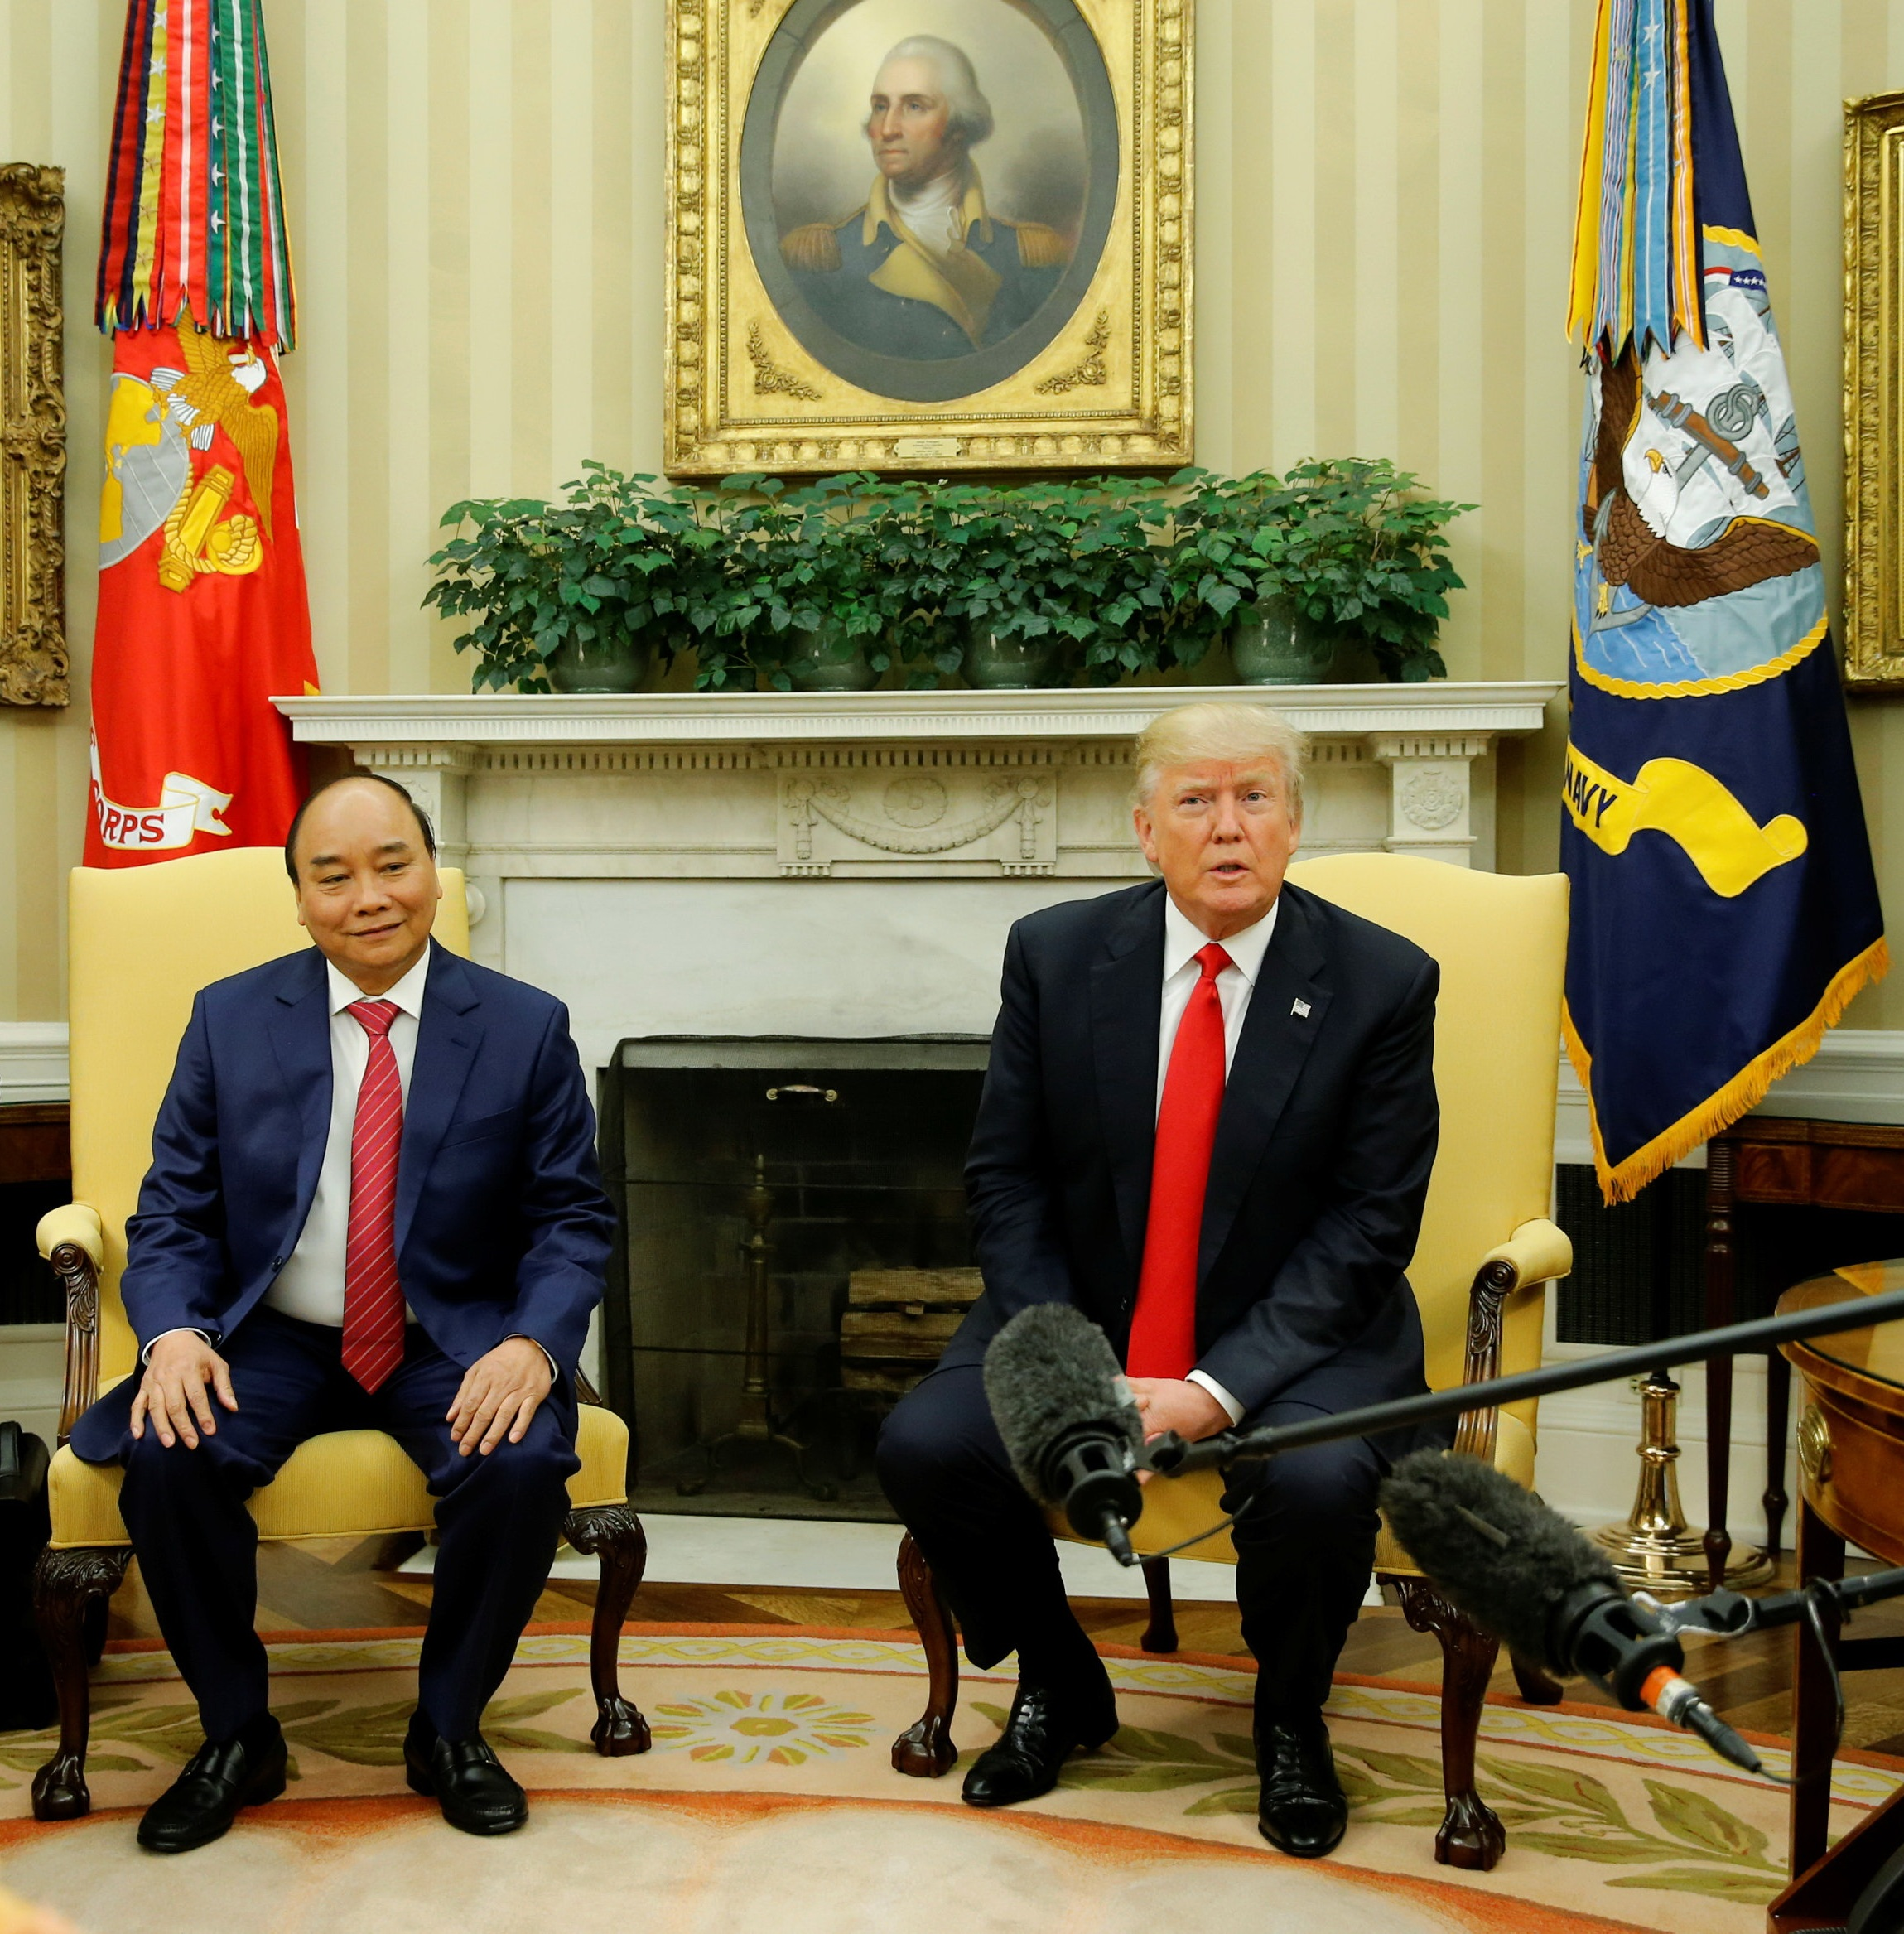 Vietnam's White House lobbying coup secures strategic gains